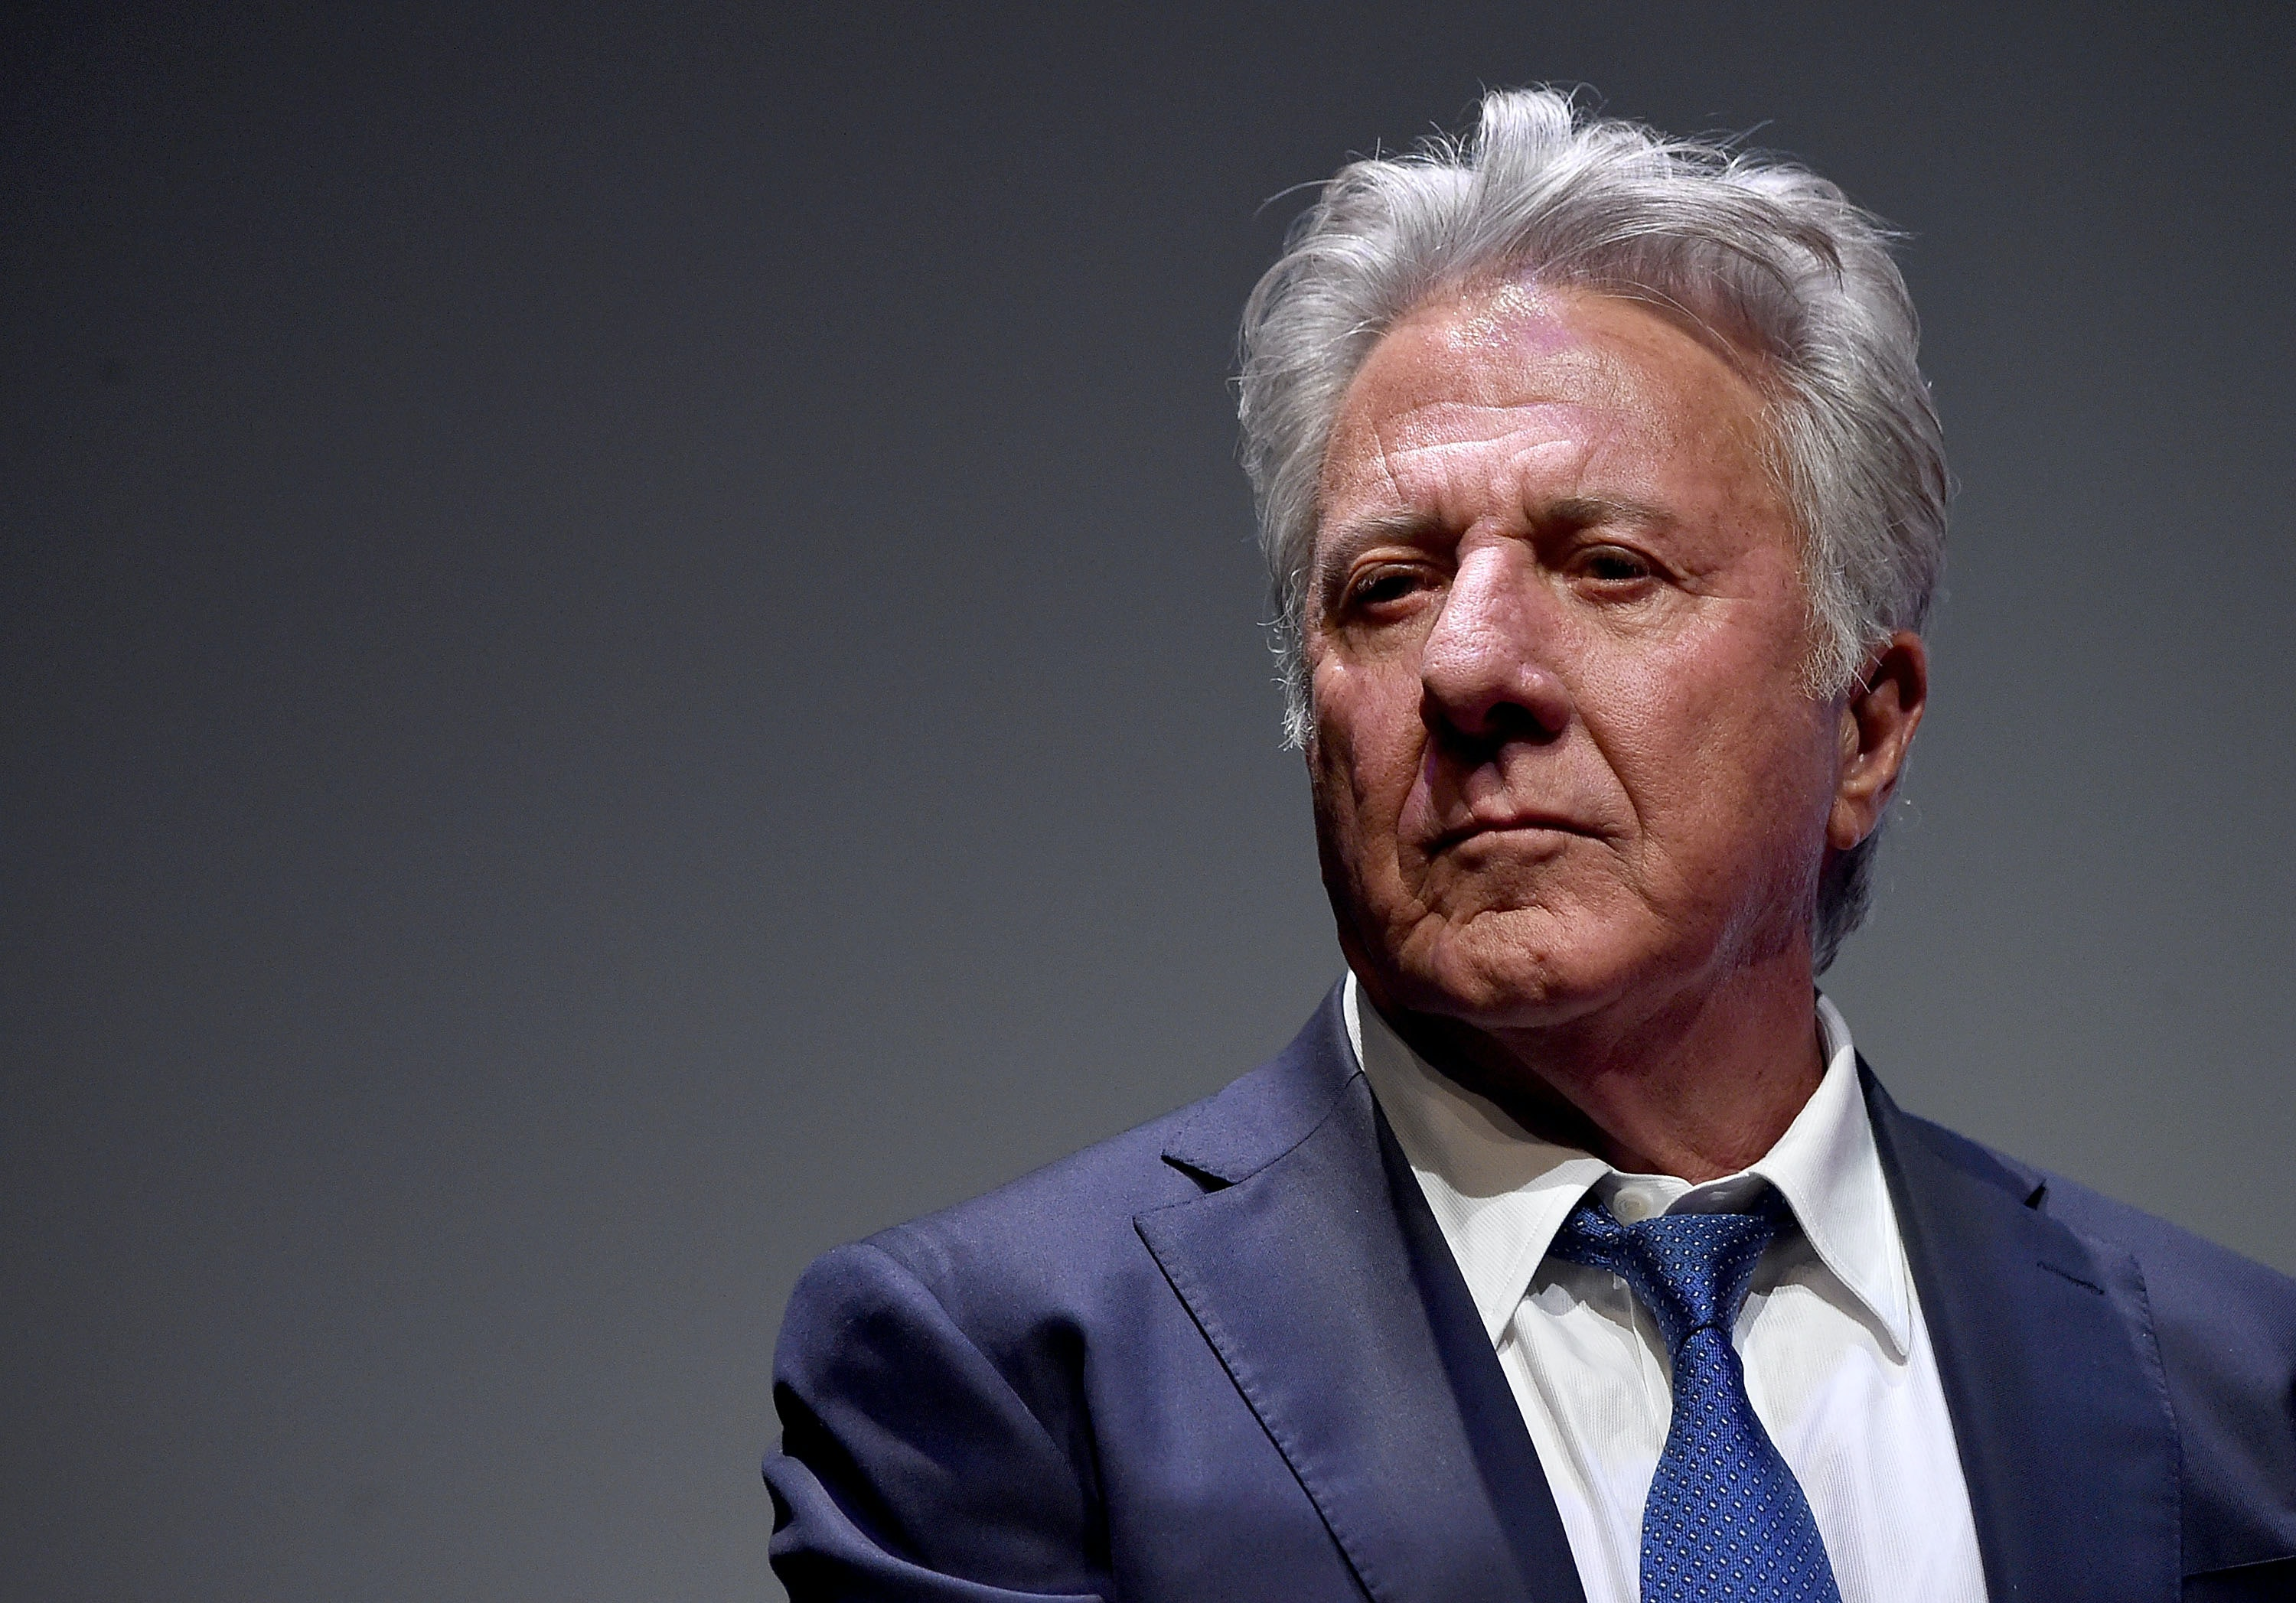 Dustin Hoffman & John Oliver Get Heated Over Harassment Claims